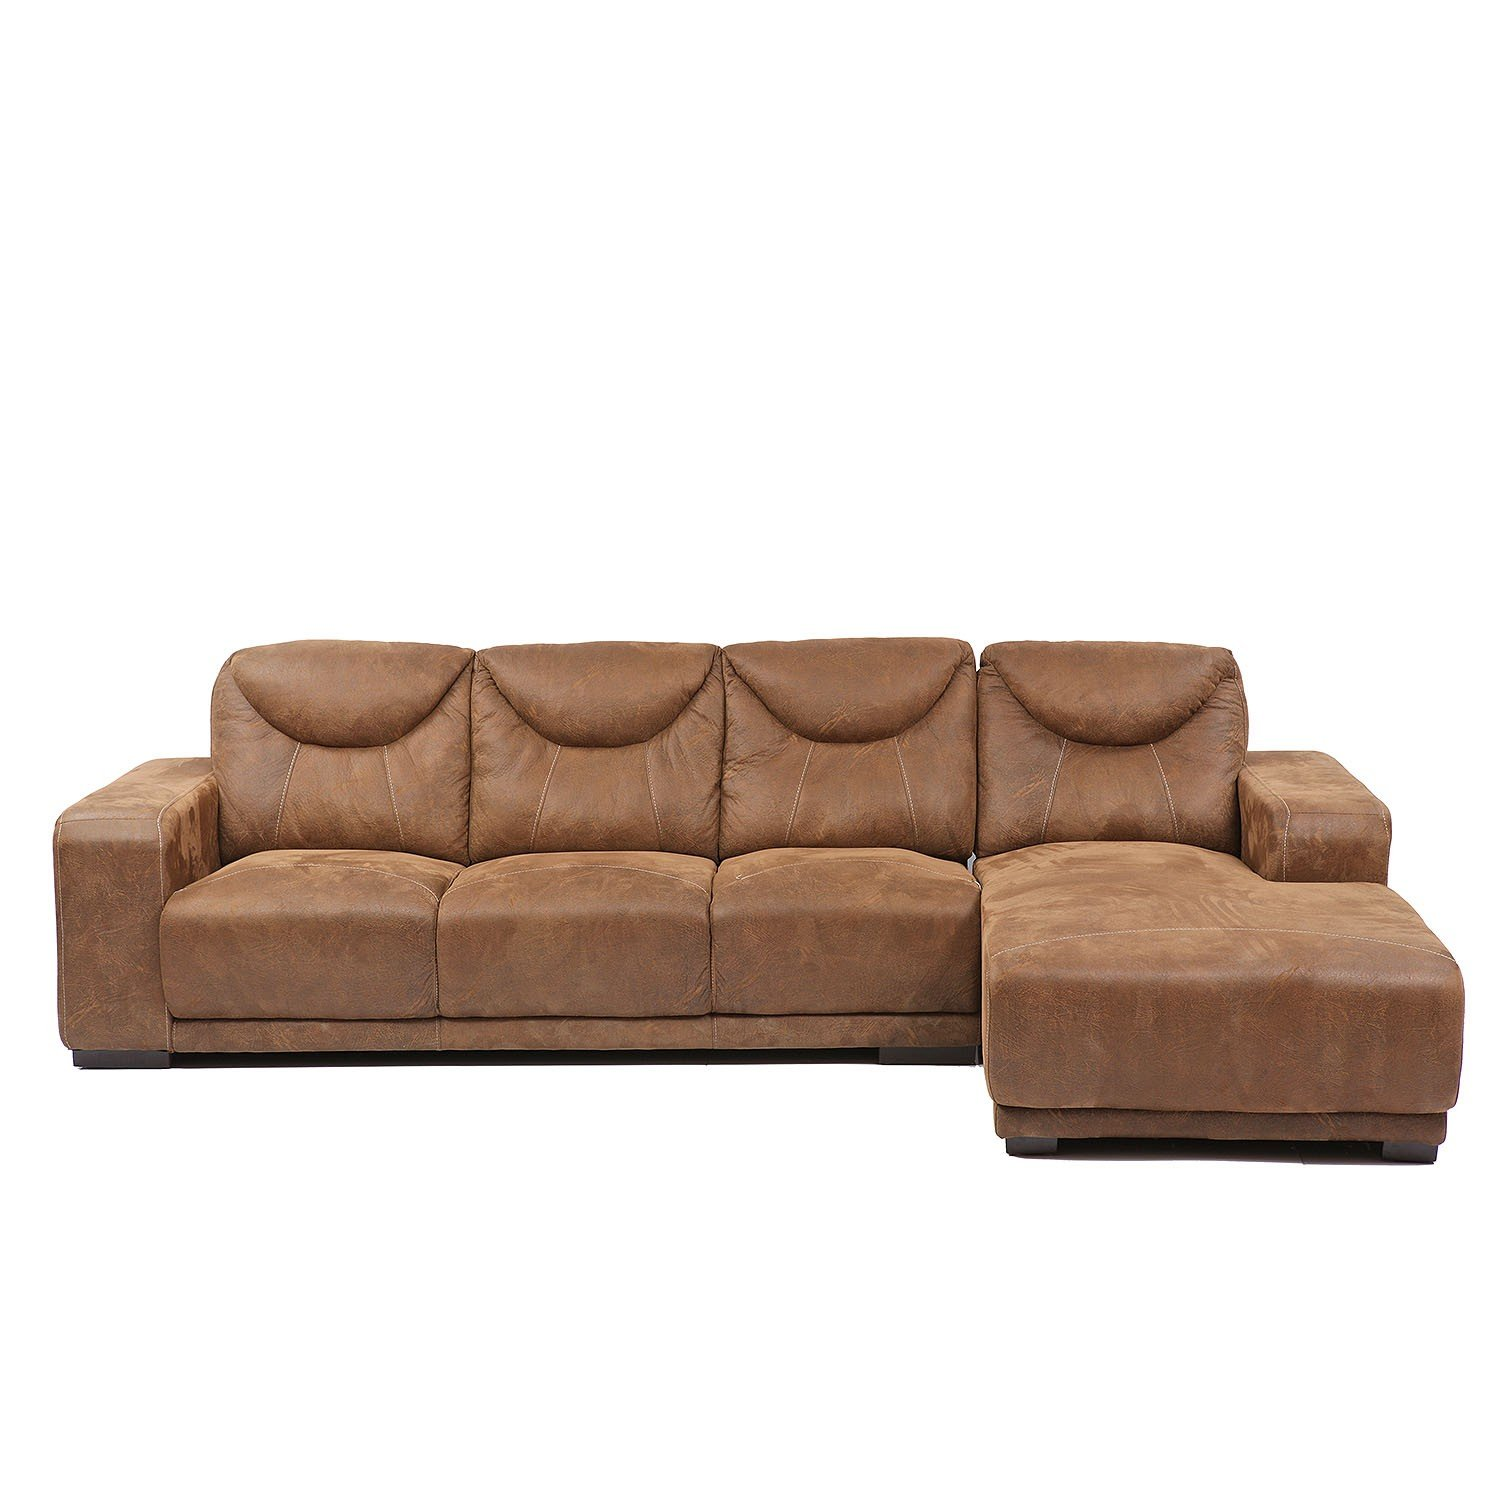 L Shape Sofa Set Snapdeal Evok Swiss L Shaped Three Seater Sofa Brown Available At